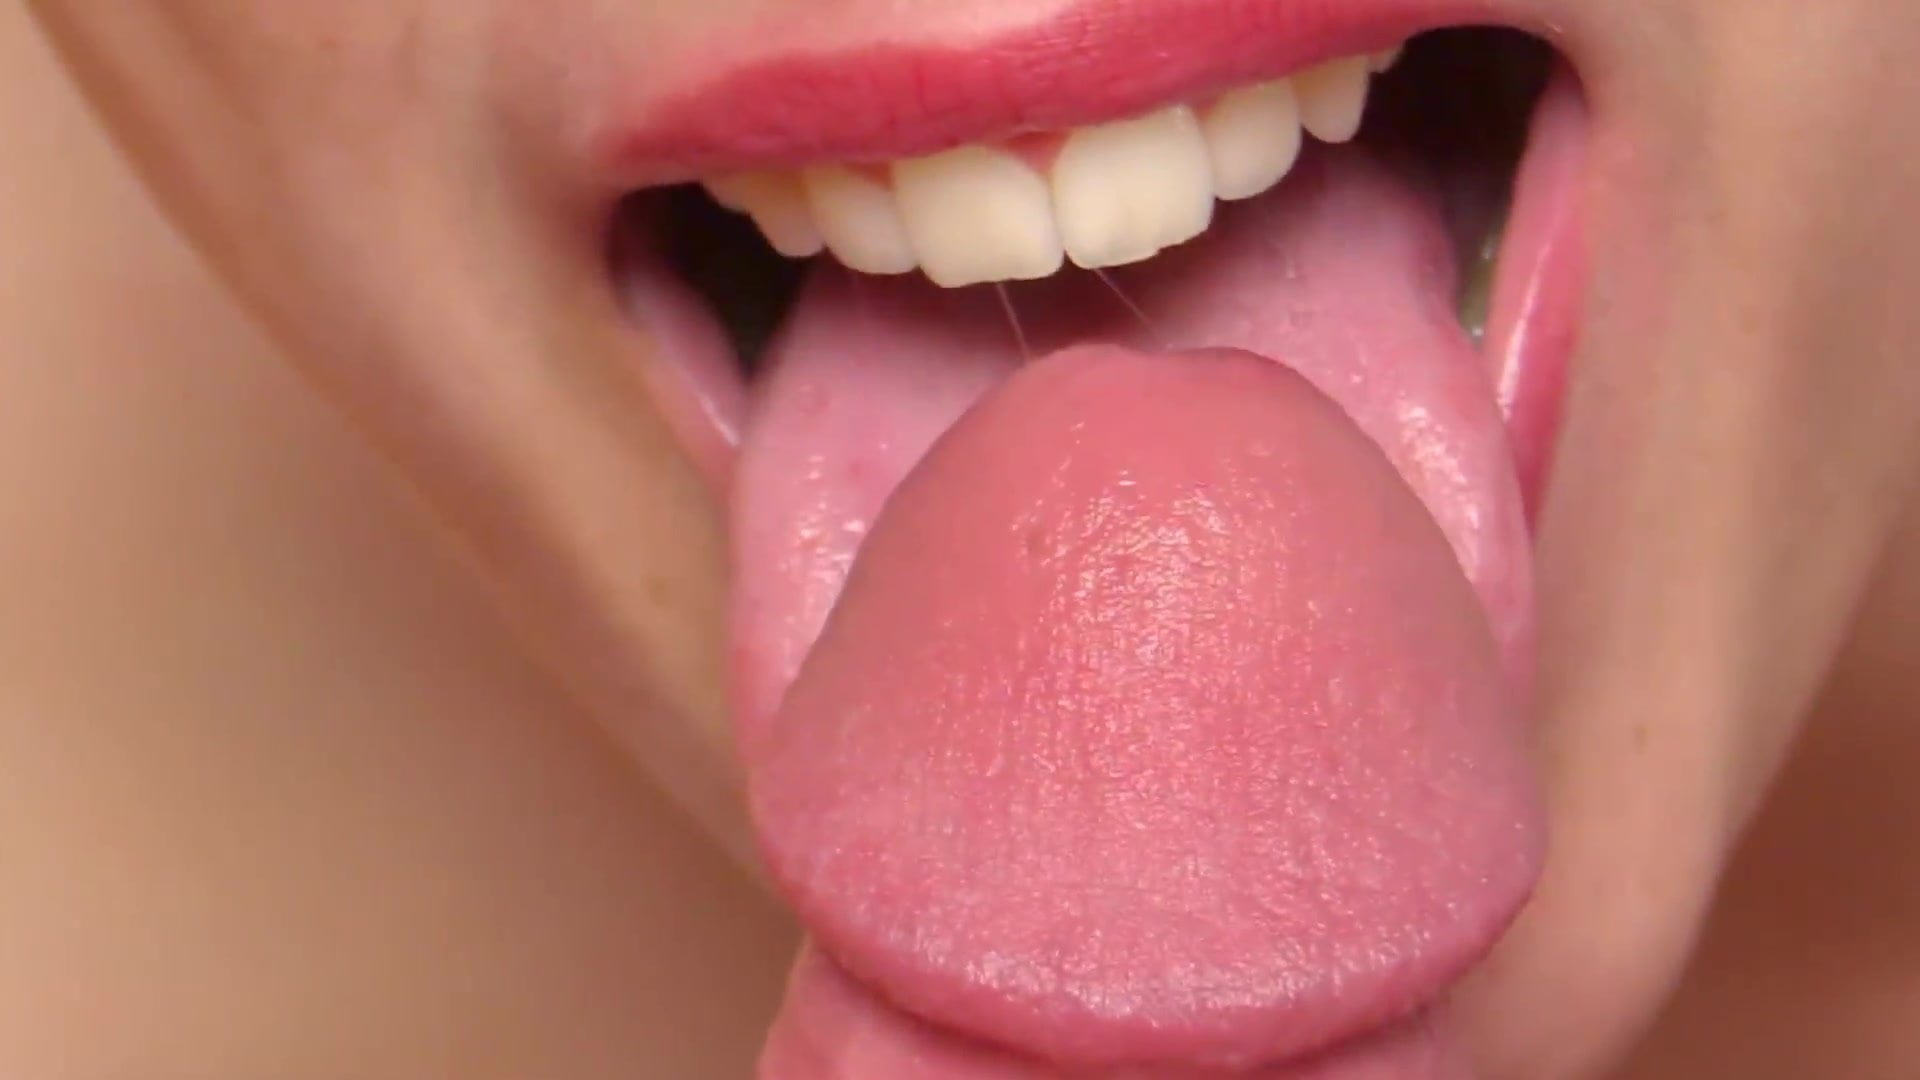 Tongue blowjob cum play cum properties leaves, what